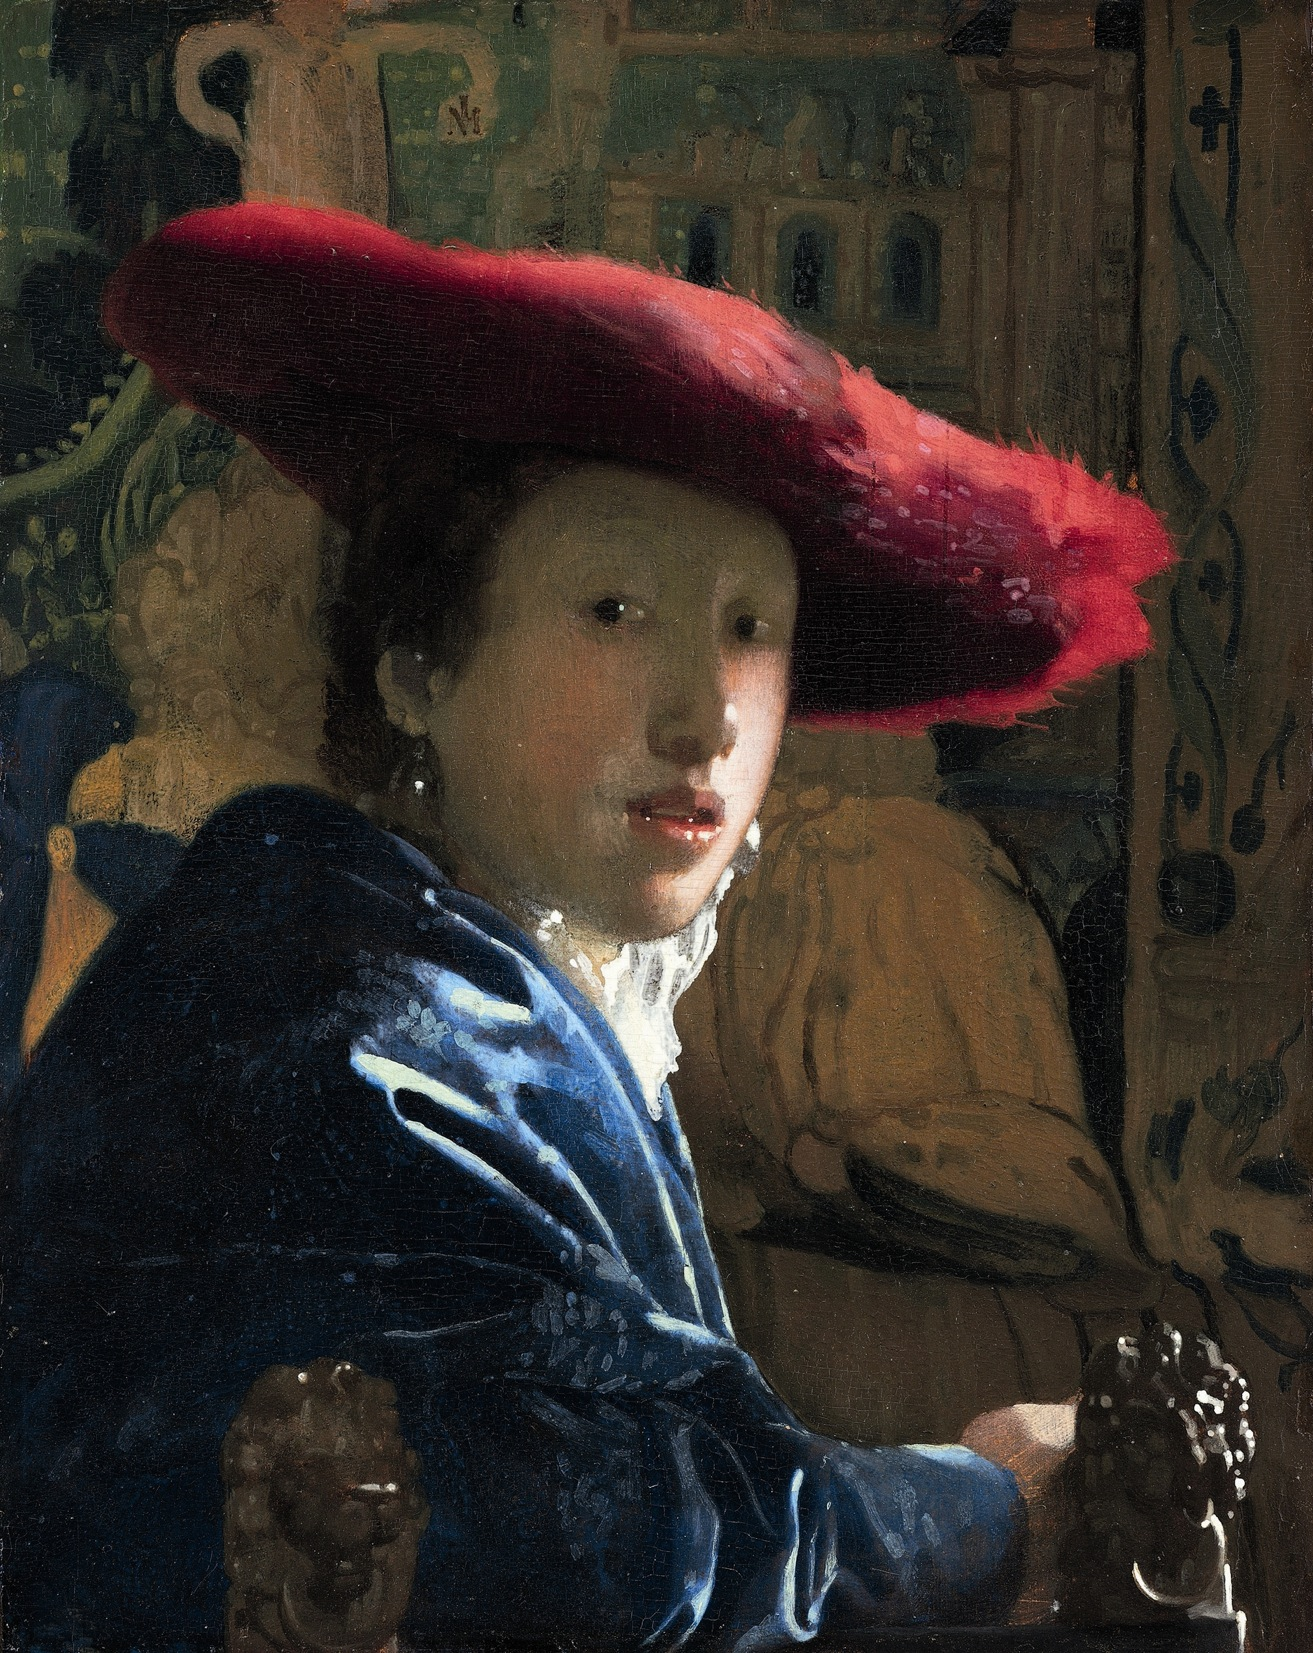 Johannes Vermeer - Girl with a Red Hat, National Gallery of Art, Washington - Vermeer. Il secolo d'oro dell'arte olandese, Scuderie del Quirinale, Roma